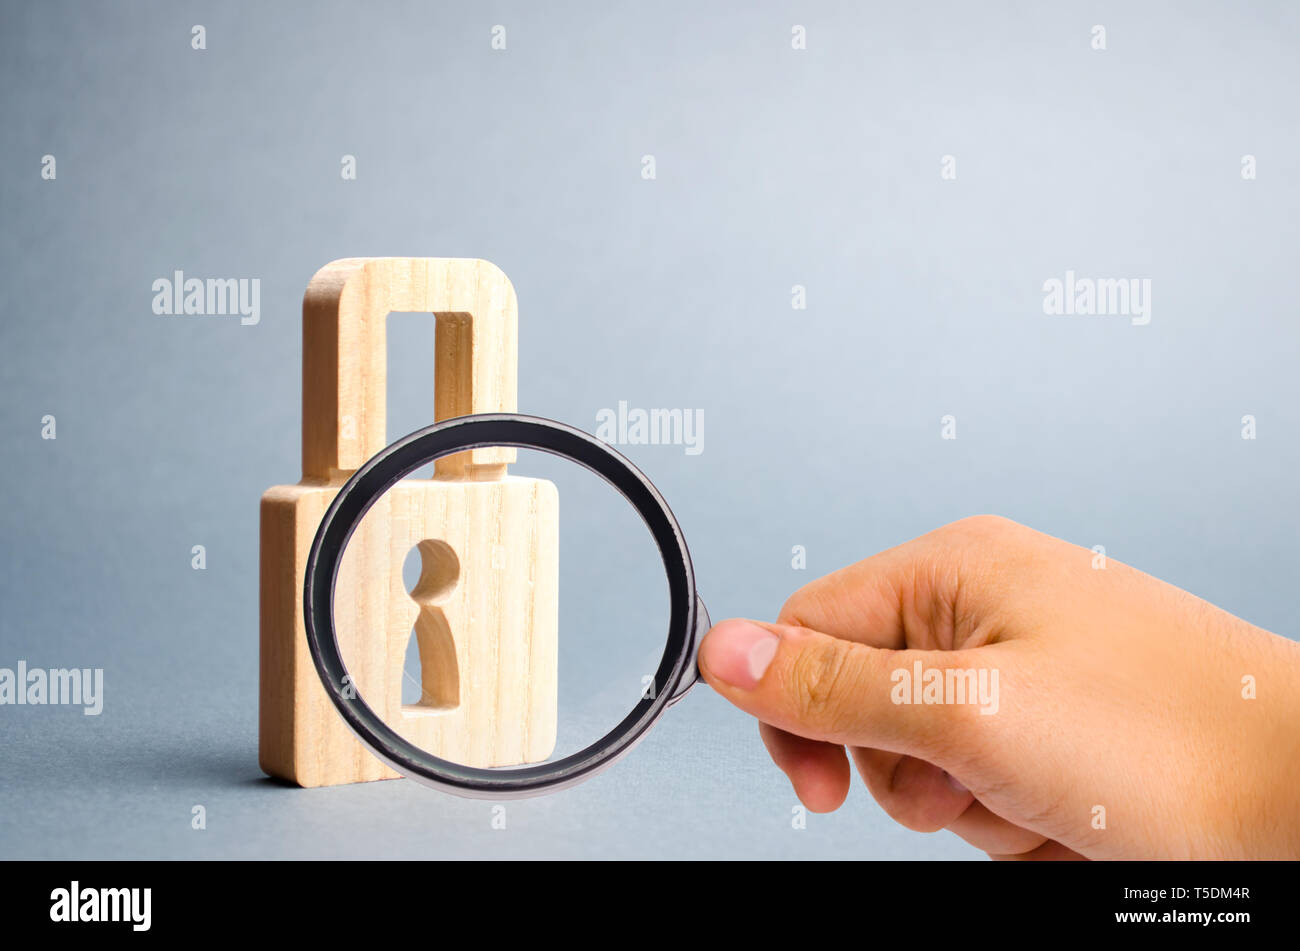 Magnifying glass is looking at the padlock on a gray background. information safty. concept of the preservation of secrets, information and values. Pr - Stock Image